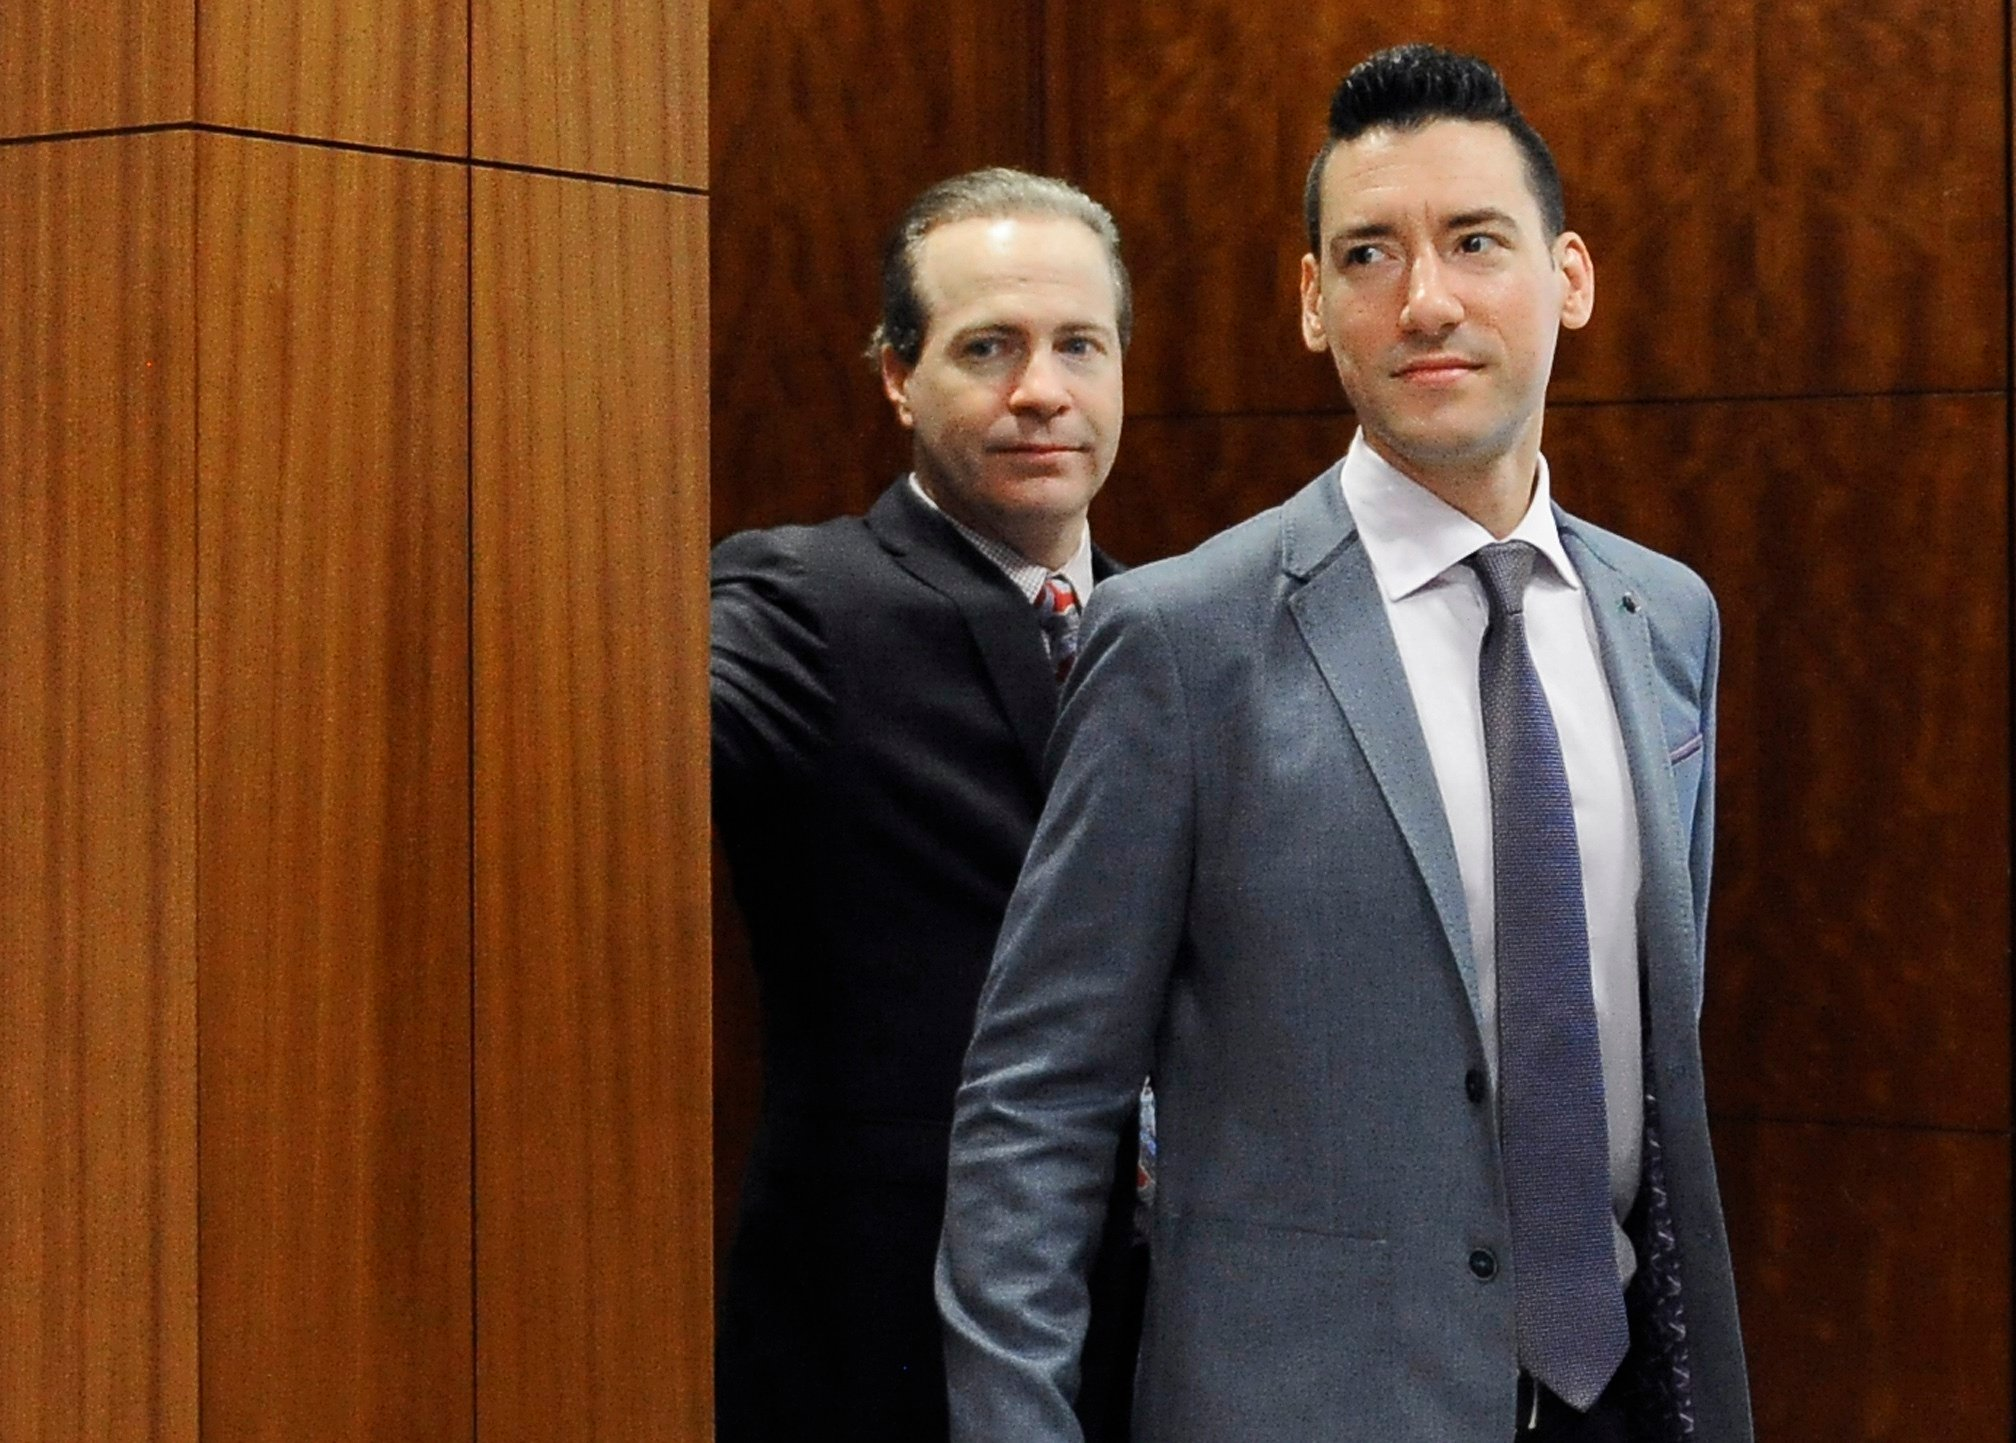 State Attorney General Xavier Becerra announced the charges Tuesday, March 28, 2017, against Daleiden and Sandra Merritt. (AP Photo/Pat Sullivan, File)